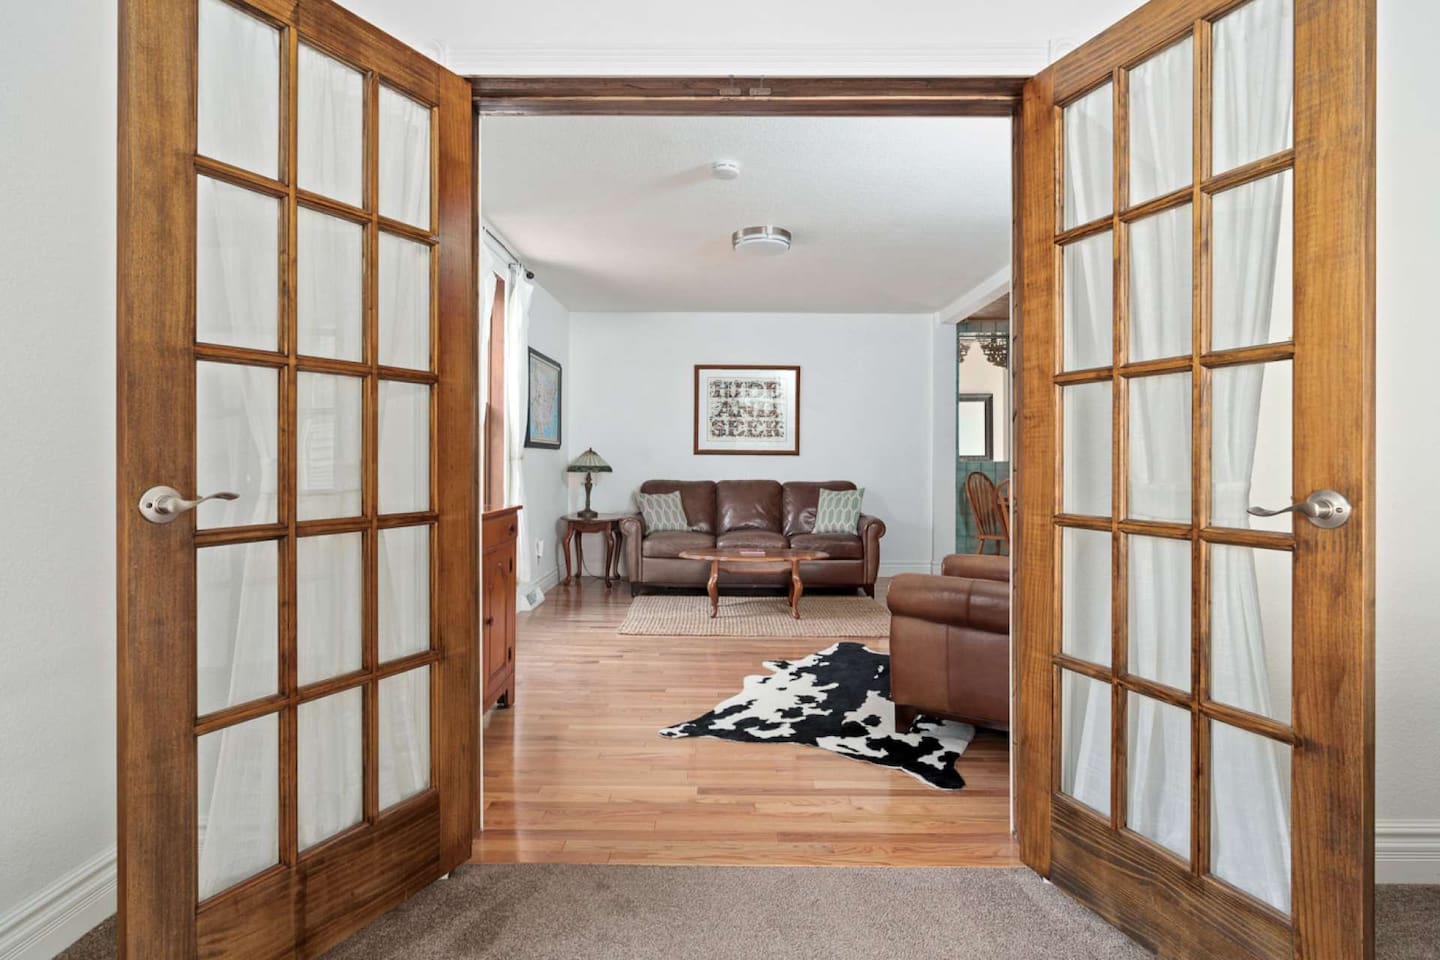 Come right in! Cozy, living room space located off the kitchen & between two bedrooms, perfect for recharging after a day of exploring.